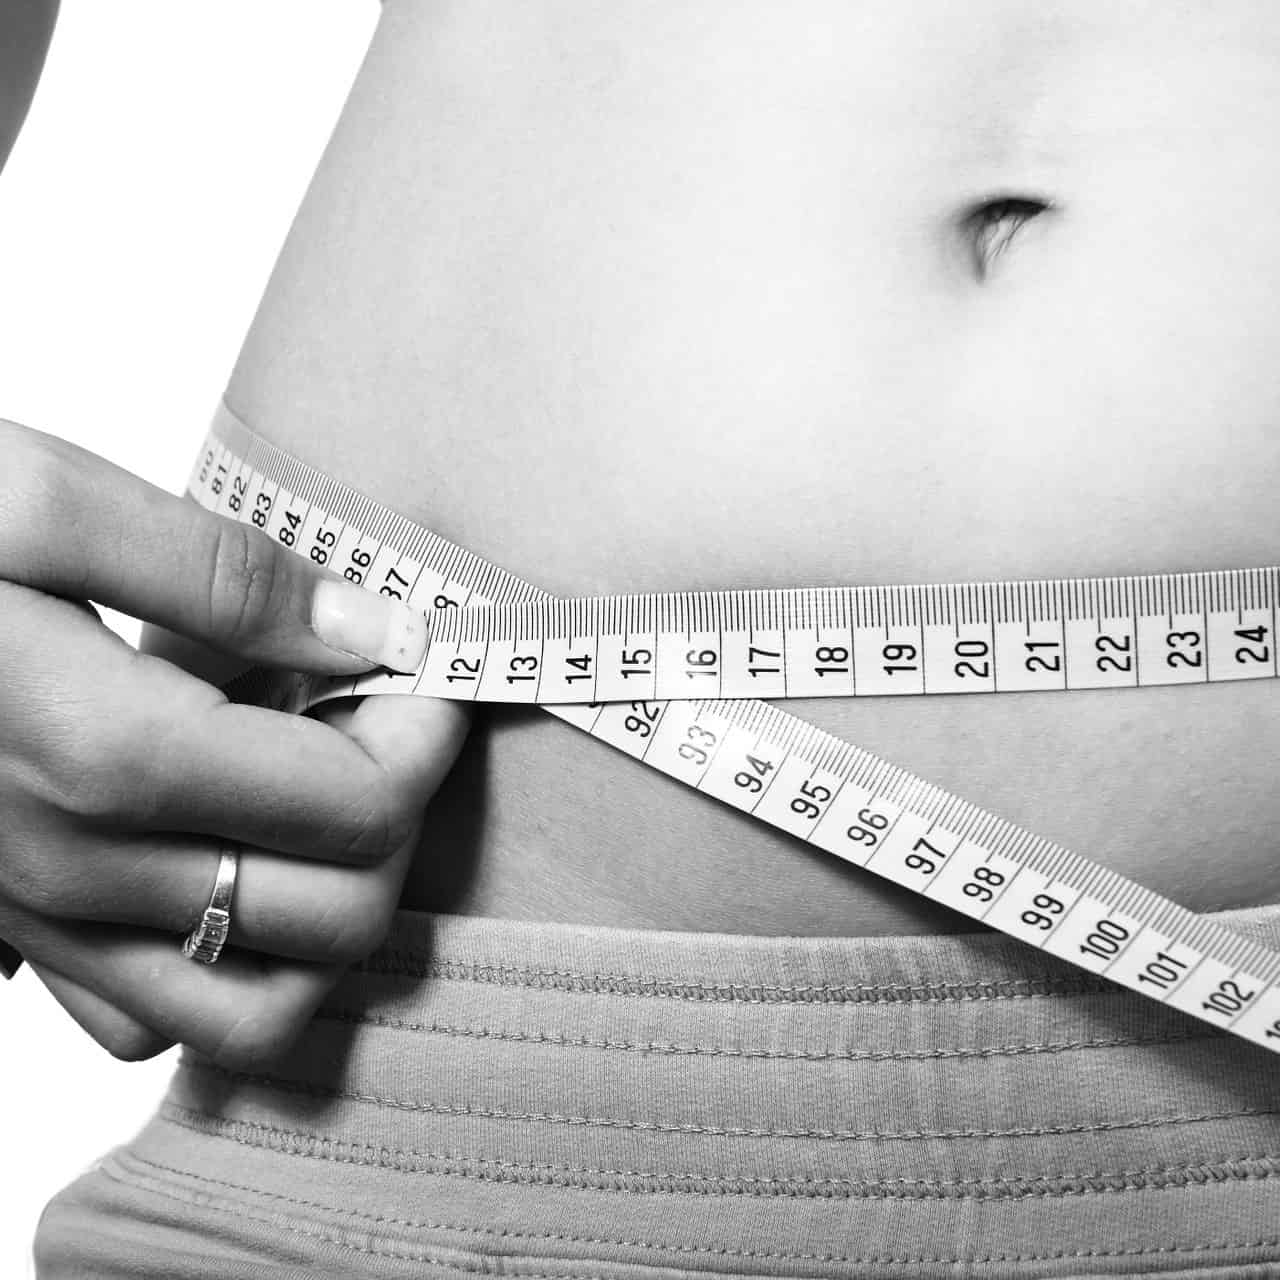 Measuring your belly